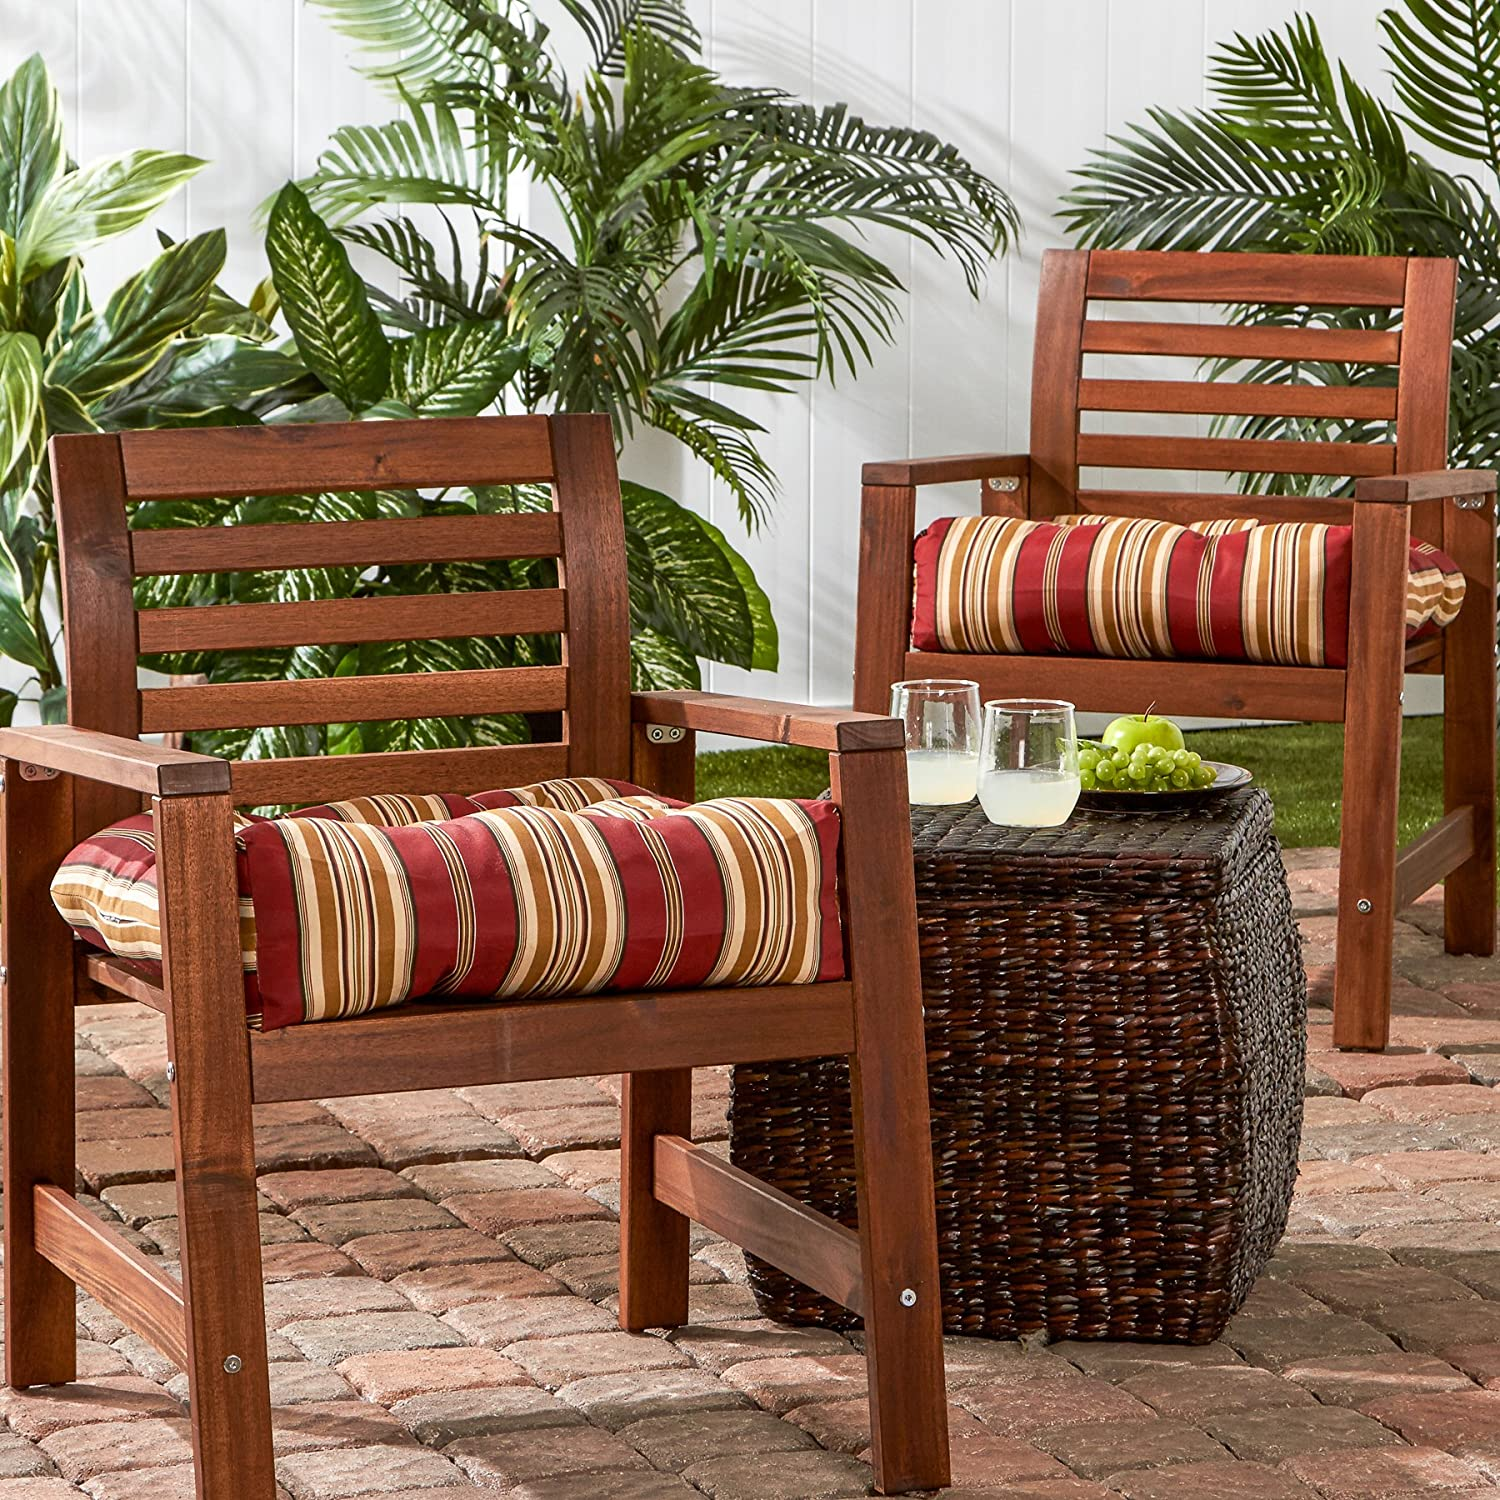 amazoncom greendale home fashions 20inch outdoor chair cushion set of 2 roma stripe home u0026 kitchen